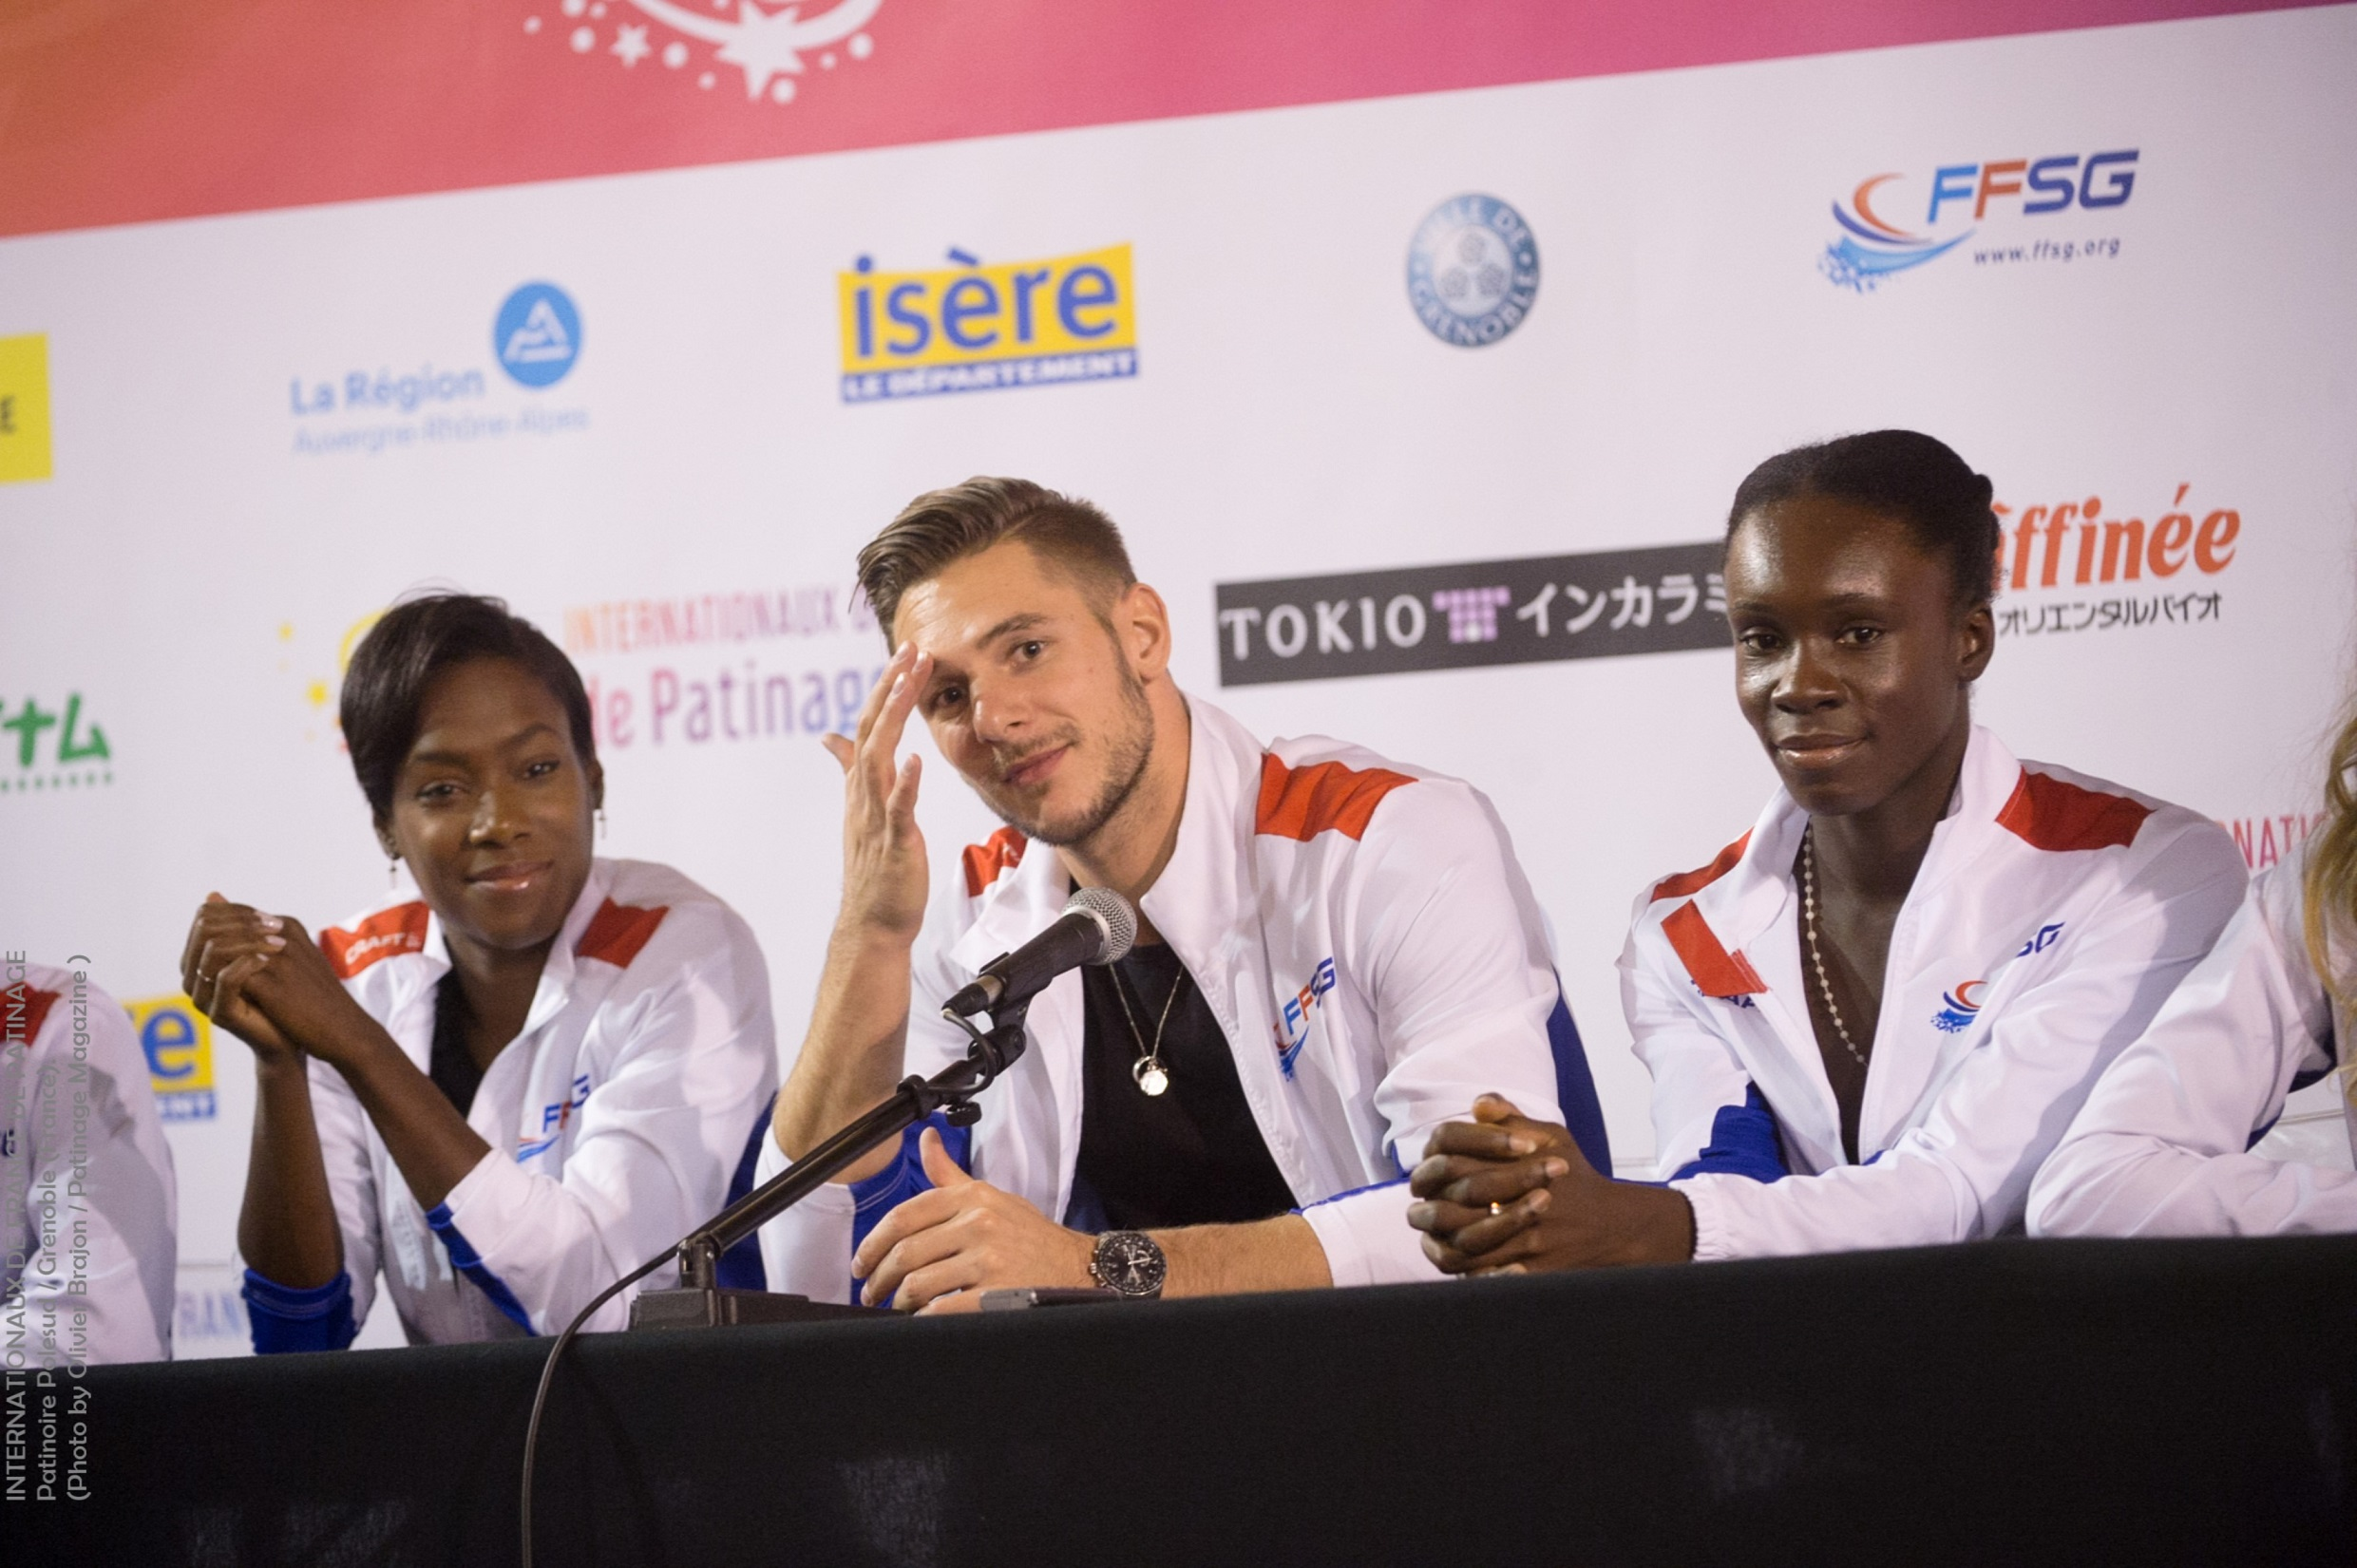 Internationaux de France Grenoble les premieres photos